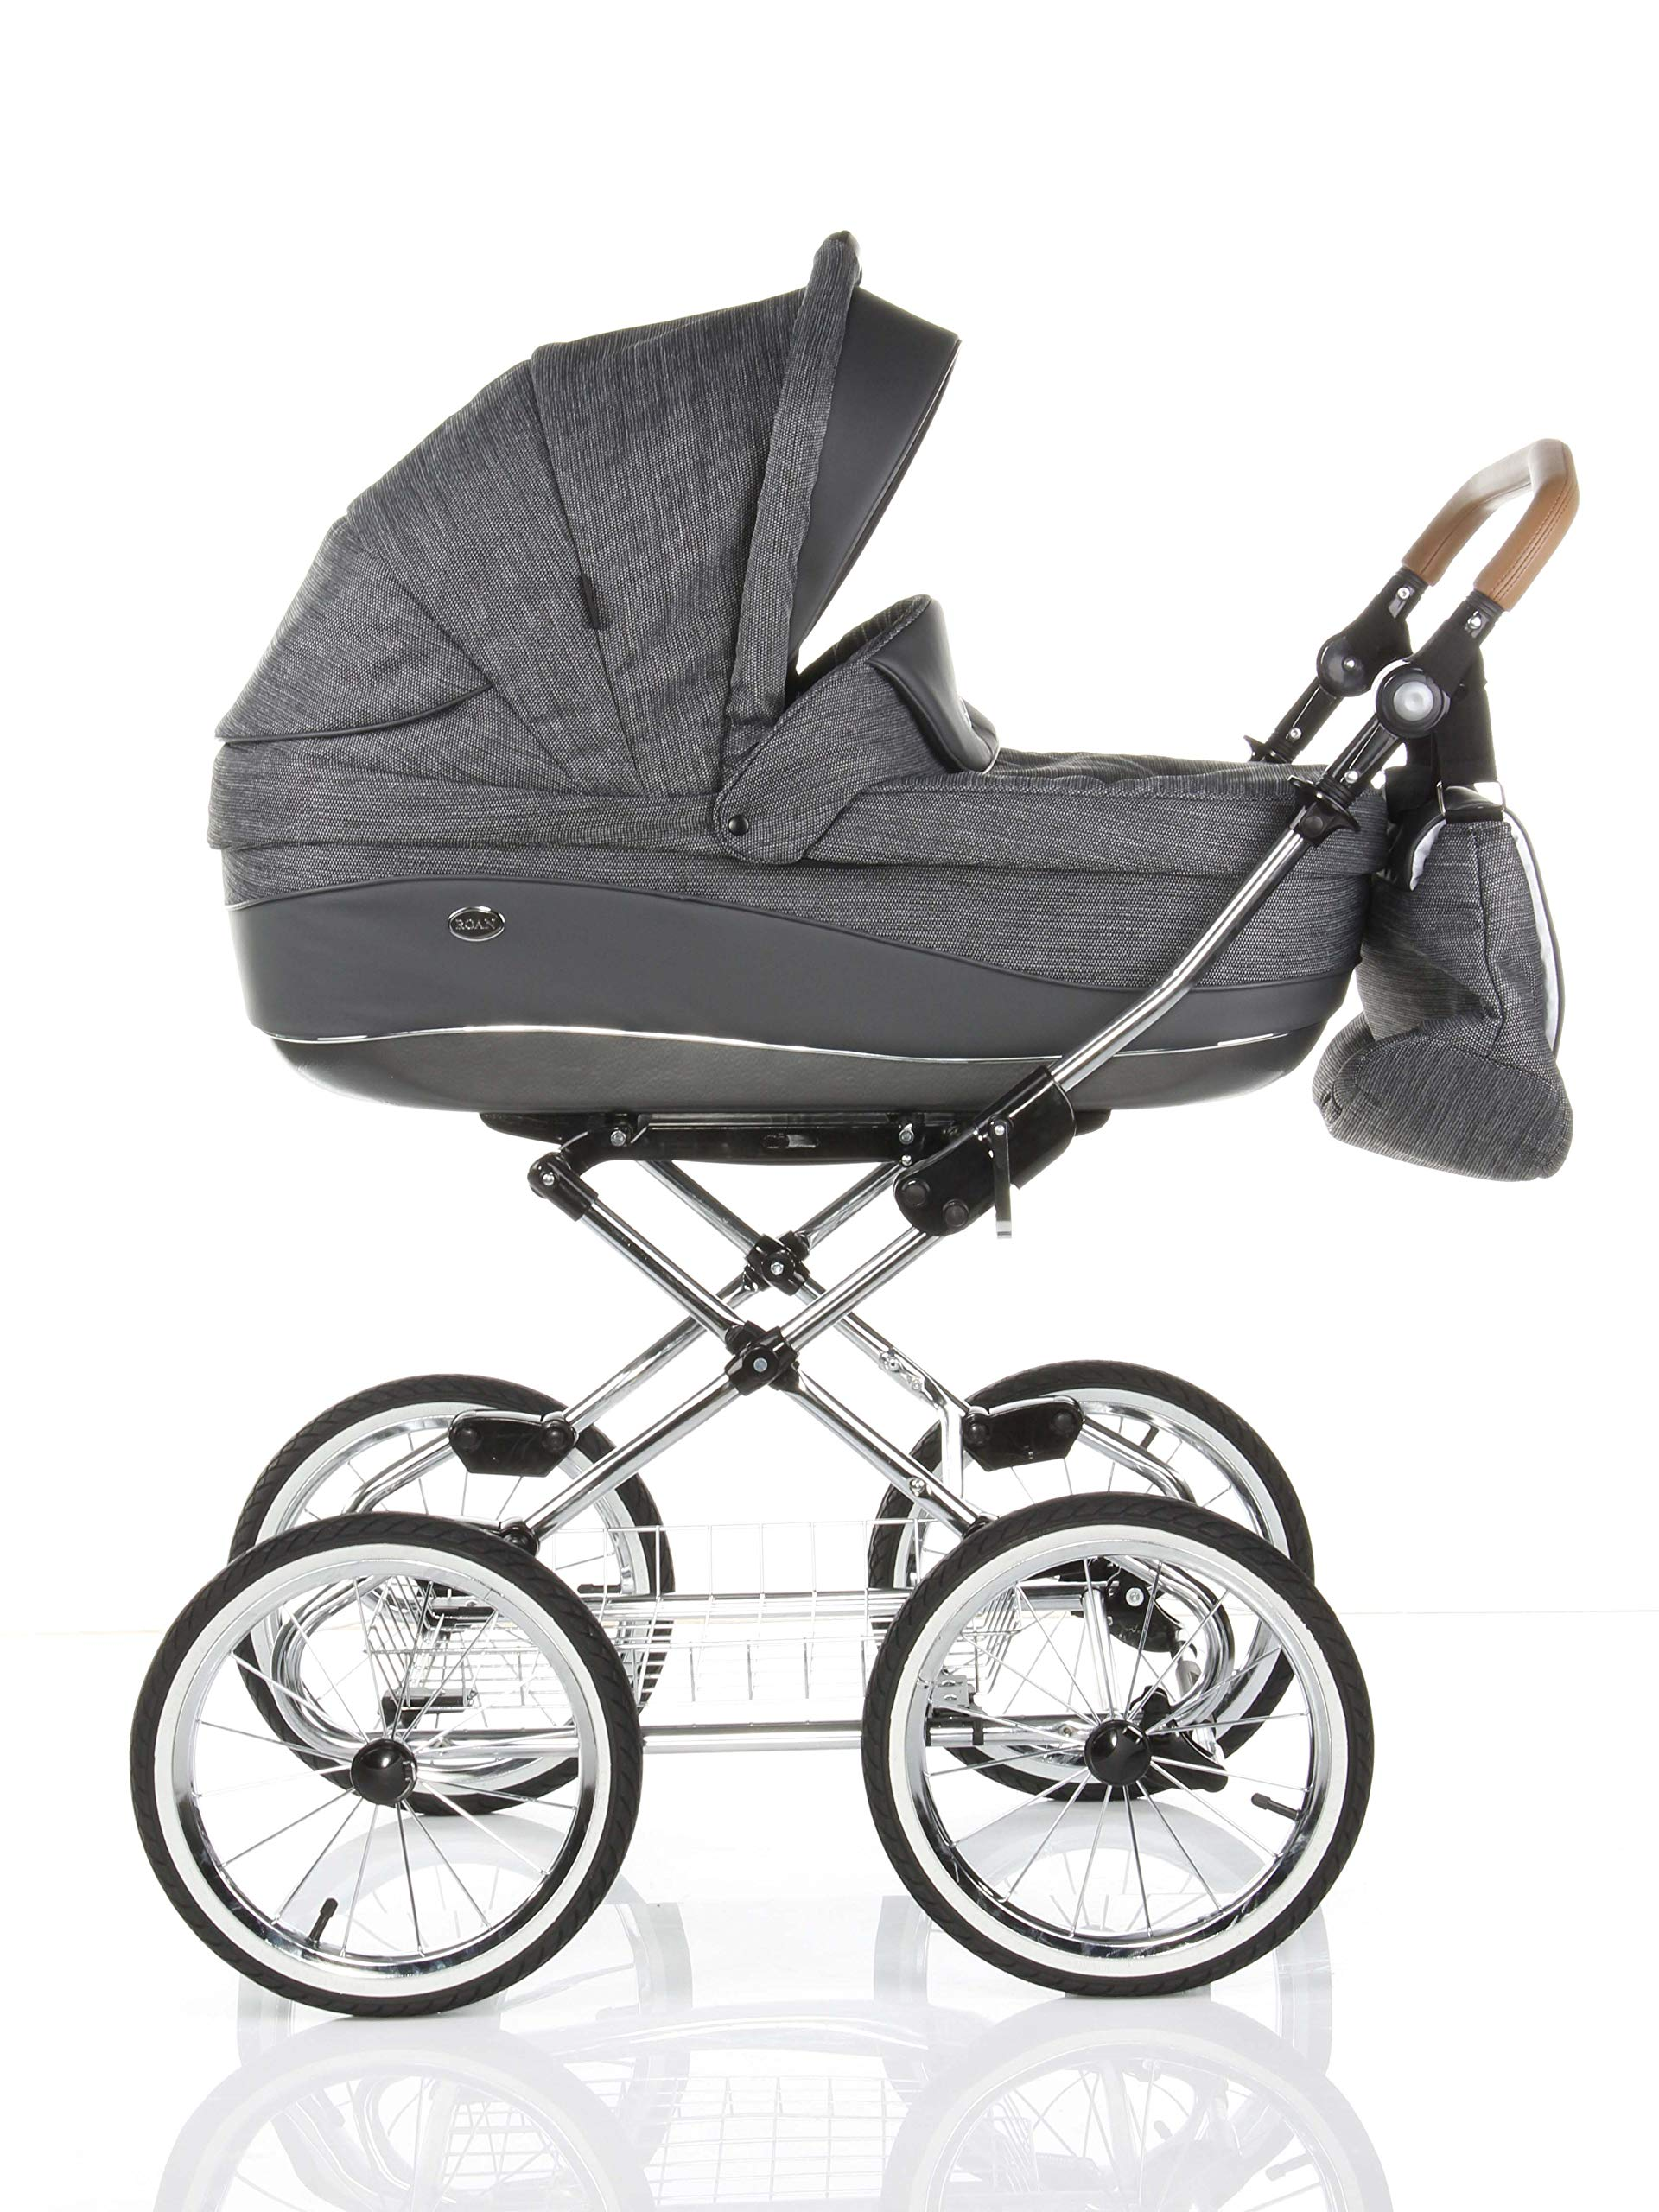 Children's Pram Buggy Stroller Combination Car seat Classic Retro Baby Carrier ROAN Emma (E-81 Dark Grey Melange-Grey Leather, 2IN1) JUNAMA Frame / wheels Sturdy and lightweight aluminum frame construction with folding function 1-click system for easy assembly and disassembly Practical carrying handle for easy storage of the folded frame Wheels for inflating (14 inch) removable wheels Brake system with central brake Height-adjustable push handle - 10-fold matching shopping basket Dimensions folded with wheels: 86 x 60 x 40 cm folded without wheels: 76 x 60 x 26 cm Total height of the stroller to hood top: 106 cm Height of the tub from the ground: 60 cm Wheelbase External dimensions: 80x 58 cm Variable height of the push handle: 77- 119 cm Weight of the frame incl. Wheels and carrying bag 15 kg Carrycot Length and width of carrycot outside: 88 x 42 cm Carrying bag length and width inside: 76 x 35 cm Sturdy plastic tub with comfortable mattress and side protection Ventilation slots on the plastic tub The baby car seat 0-13 kg Maxi-Cosi in black incl. Adapter 3